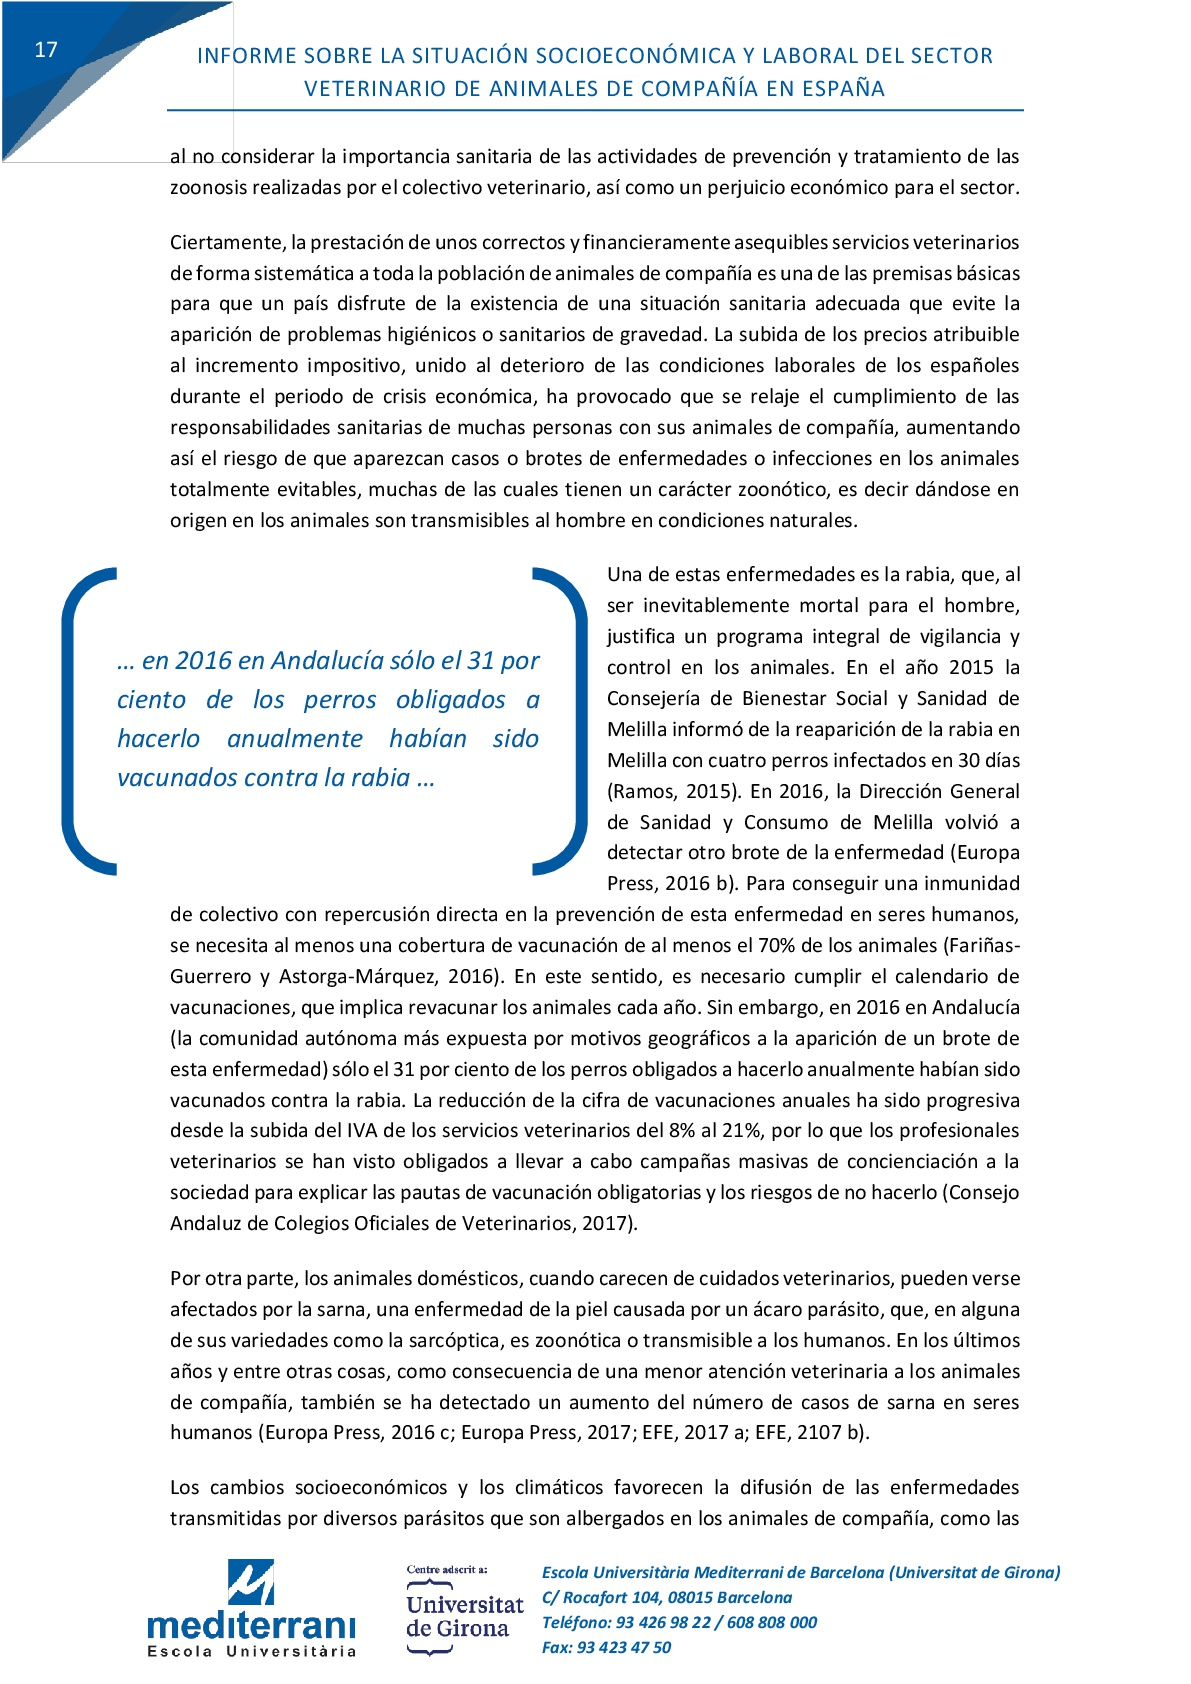 Informe-Veterinario-2017-+-informe-legal-2015-(3)-022